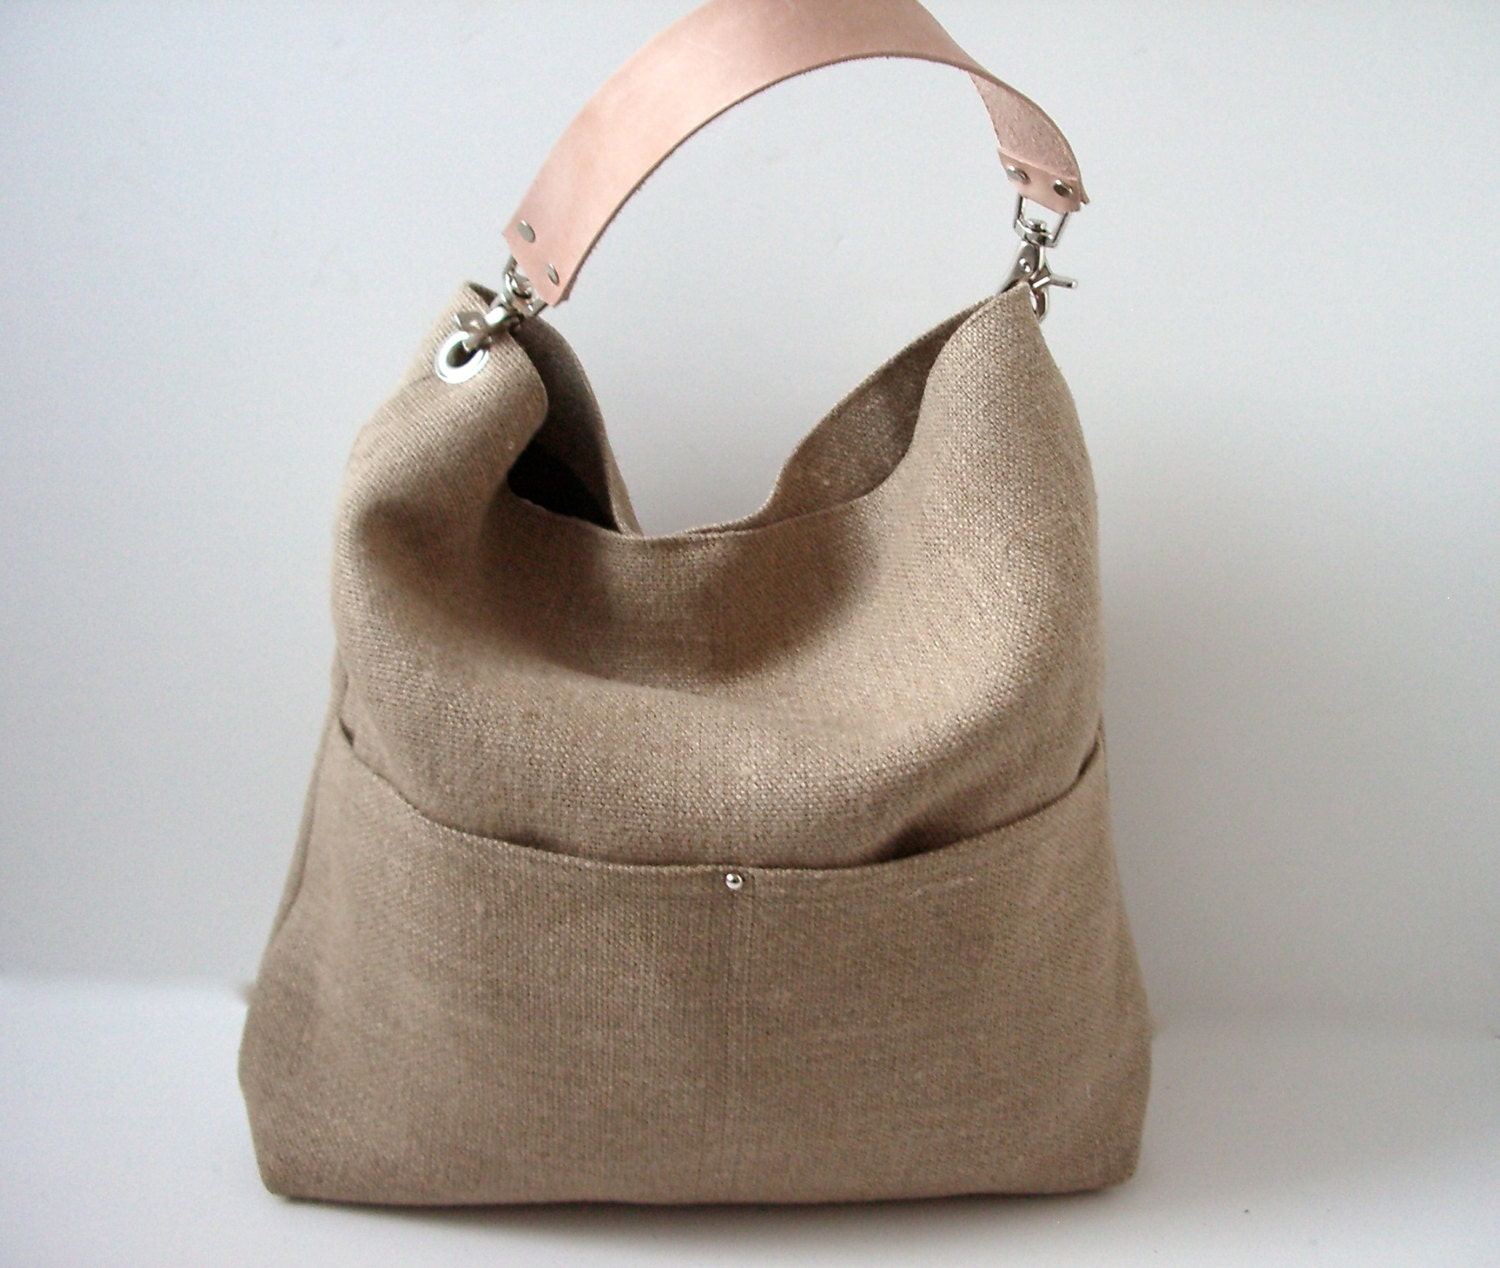 EP_ Women Handbag Weave Tote Purse Beach Hobo Bag Crossbody Straw Shoulder Bag G. $ Buy It Now. Free Shipping. 8% off. SPONSORED. New Listing Eric Javits Squishee Woven Straw Hobo Bag Natural Tan Croc Leather. Pre-Owned. $ or Best Offer +$ shipping.